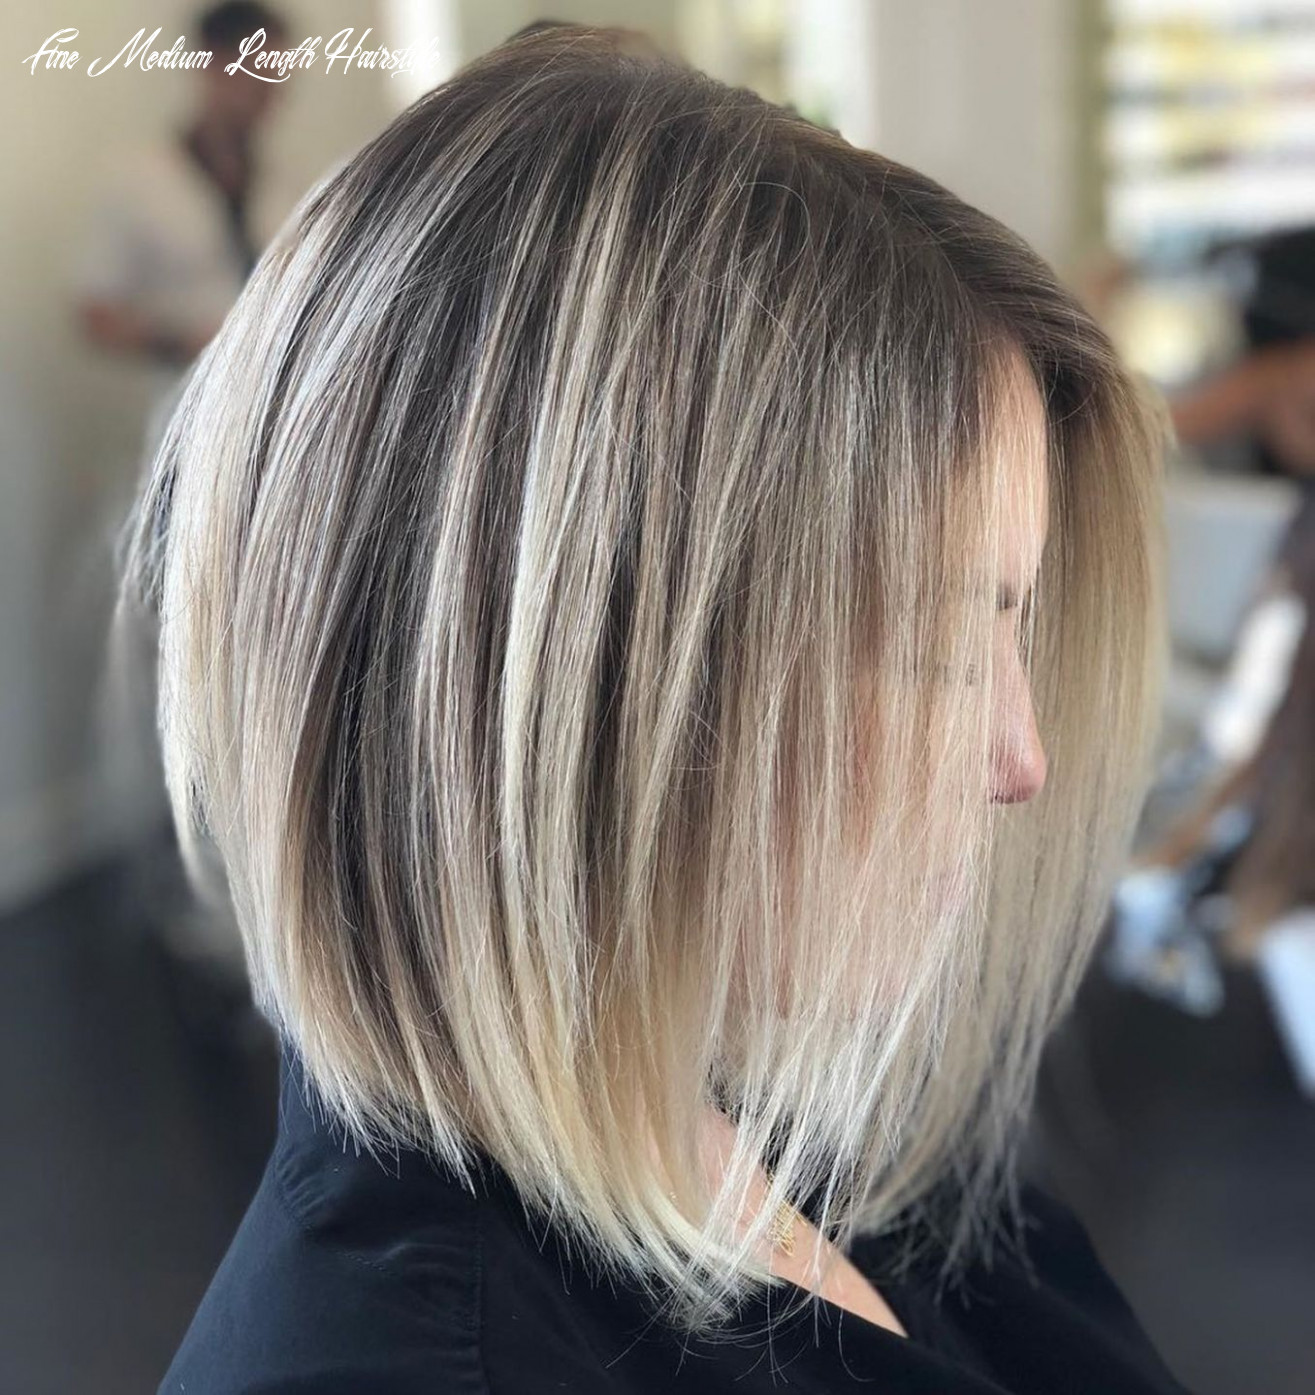 8 perfect medium length hairstyles for thin hair (with images